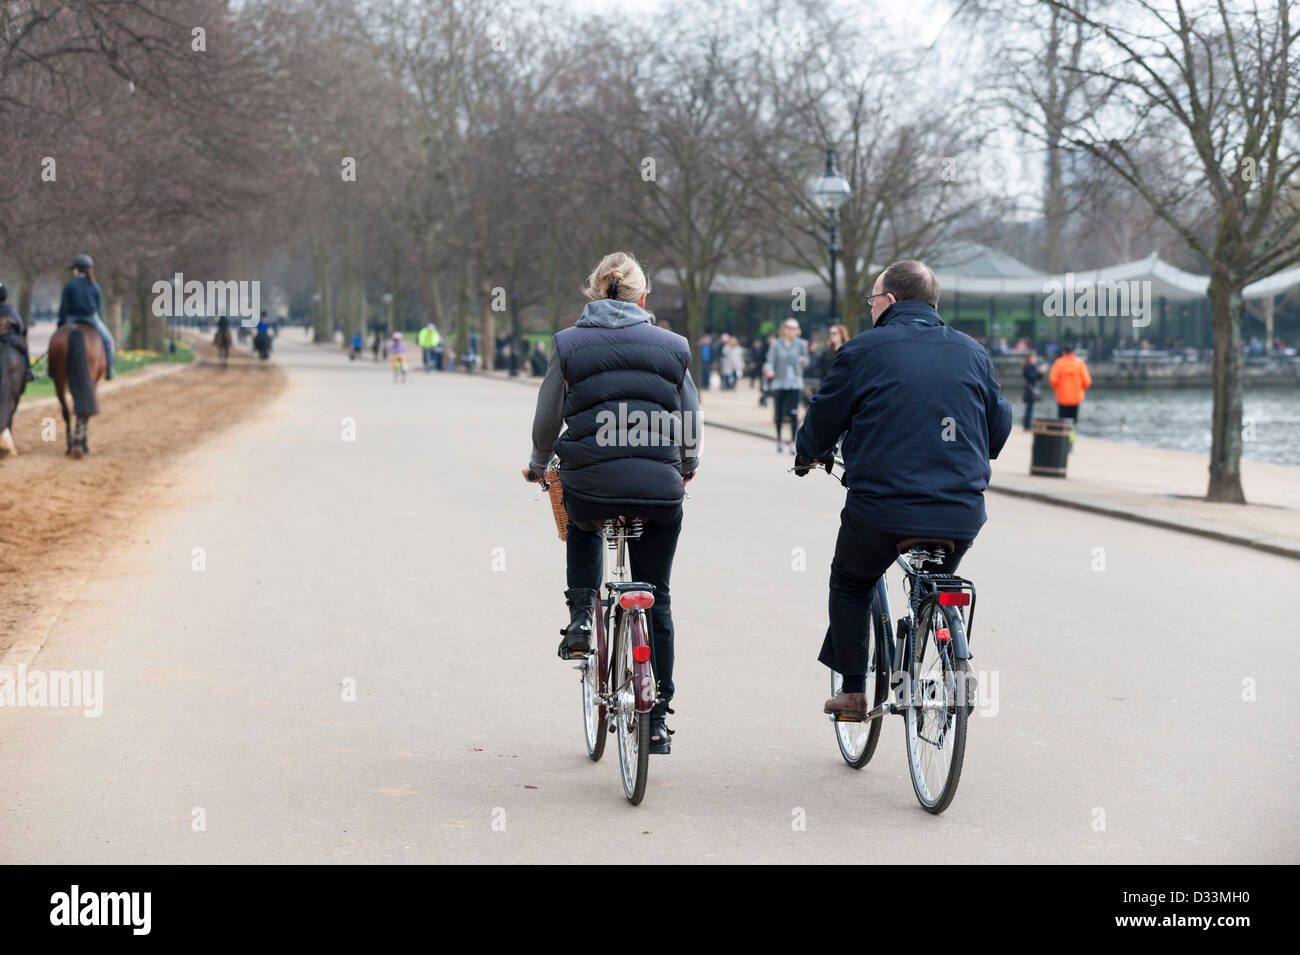 Cycling in Hyde Park, London - cyclists, UK - Stock Image